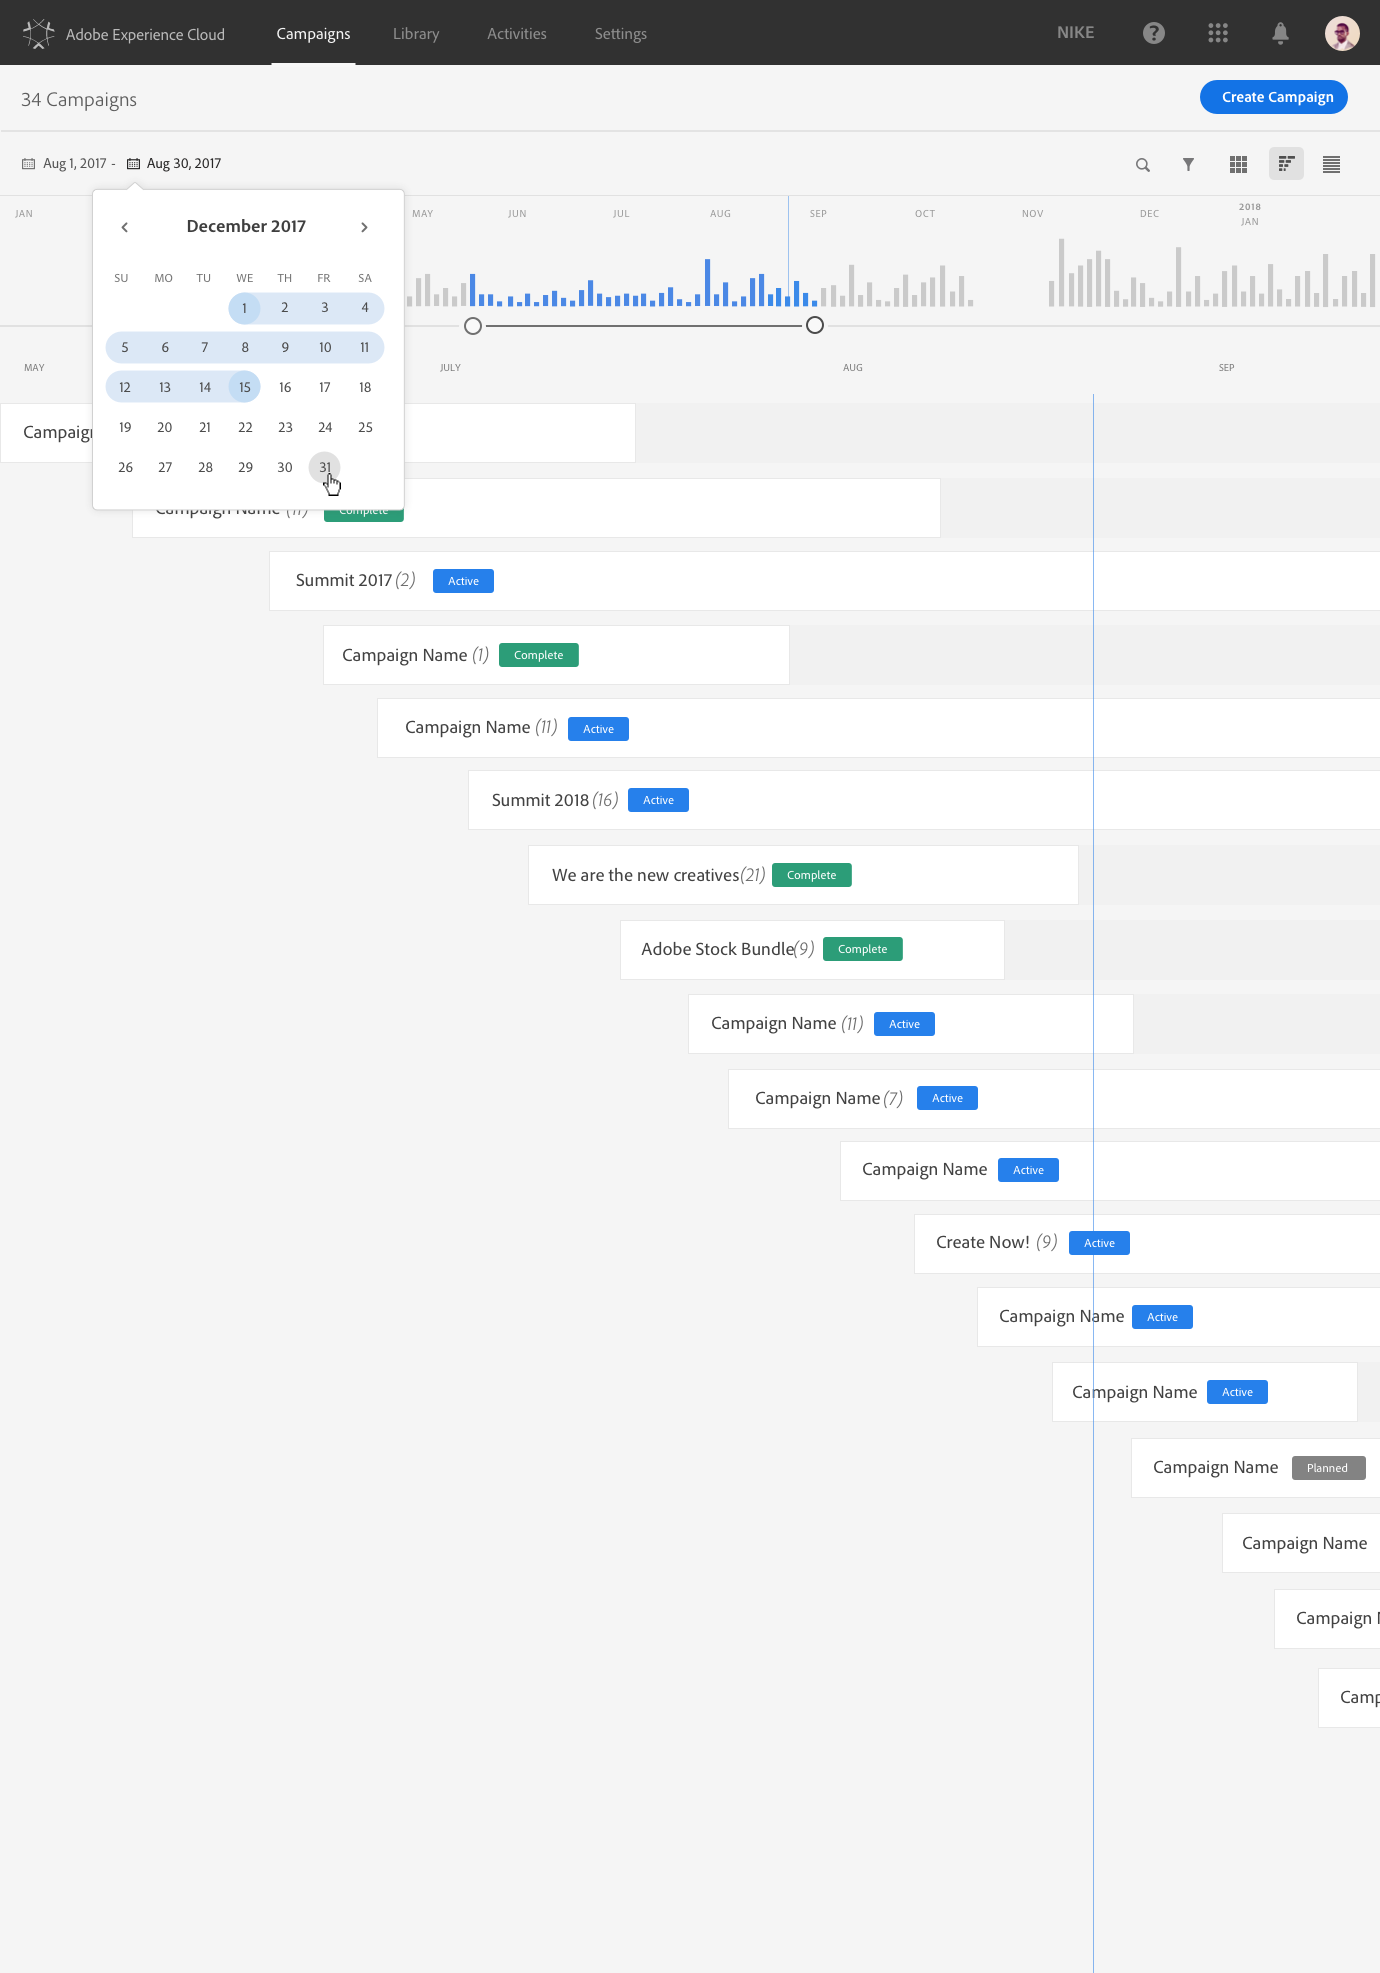 Campaign Timeline - As companies can have tens of thousands of marketing activities, they needed to be able to be organized into campaigns and inside a single campaign users wanted the ability for multiple dedicated calendar views, e.g. summer 2019 campaign with a calendar dedicated to each region.